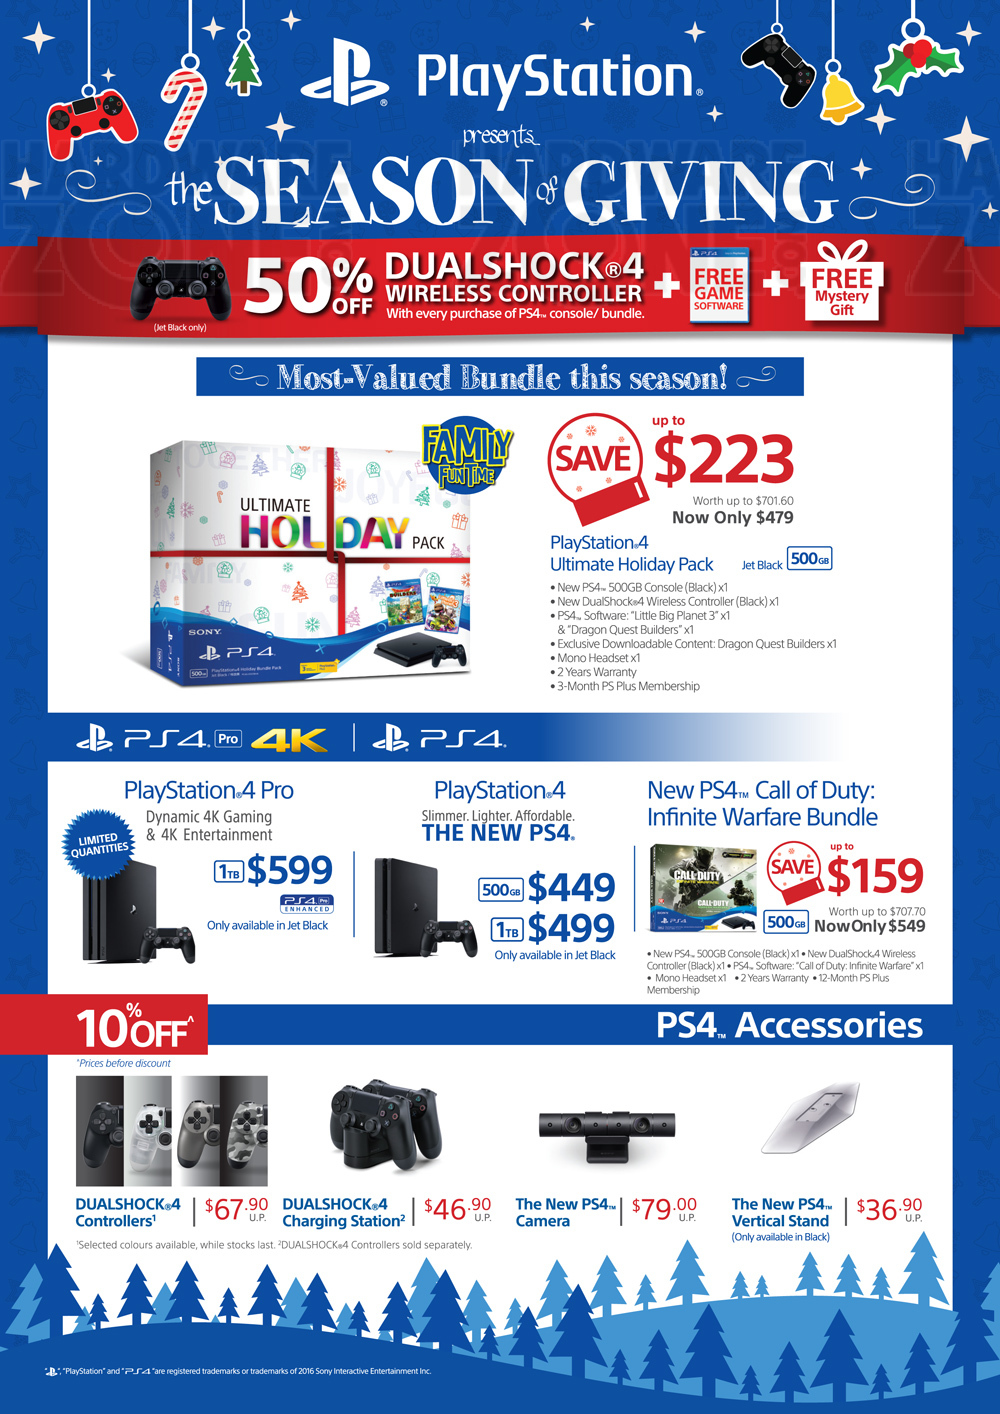 Game Deals Page 22 Hardwarezonecomsg Playstation Network Card Psn Singapore Credit 50 Sgd This Image Has Been Resizedclick To View Original